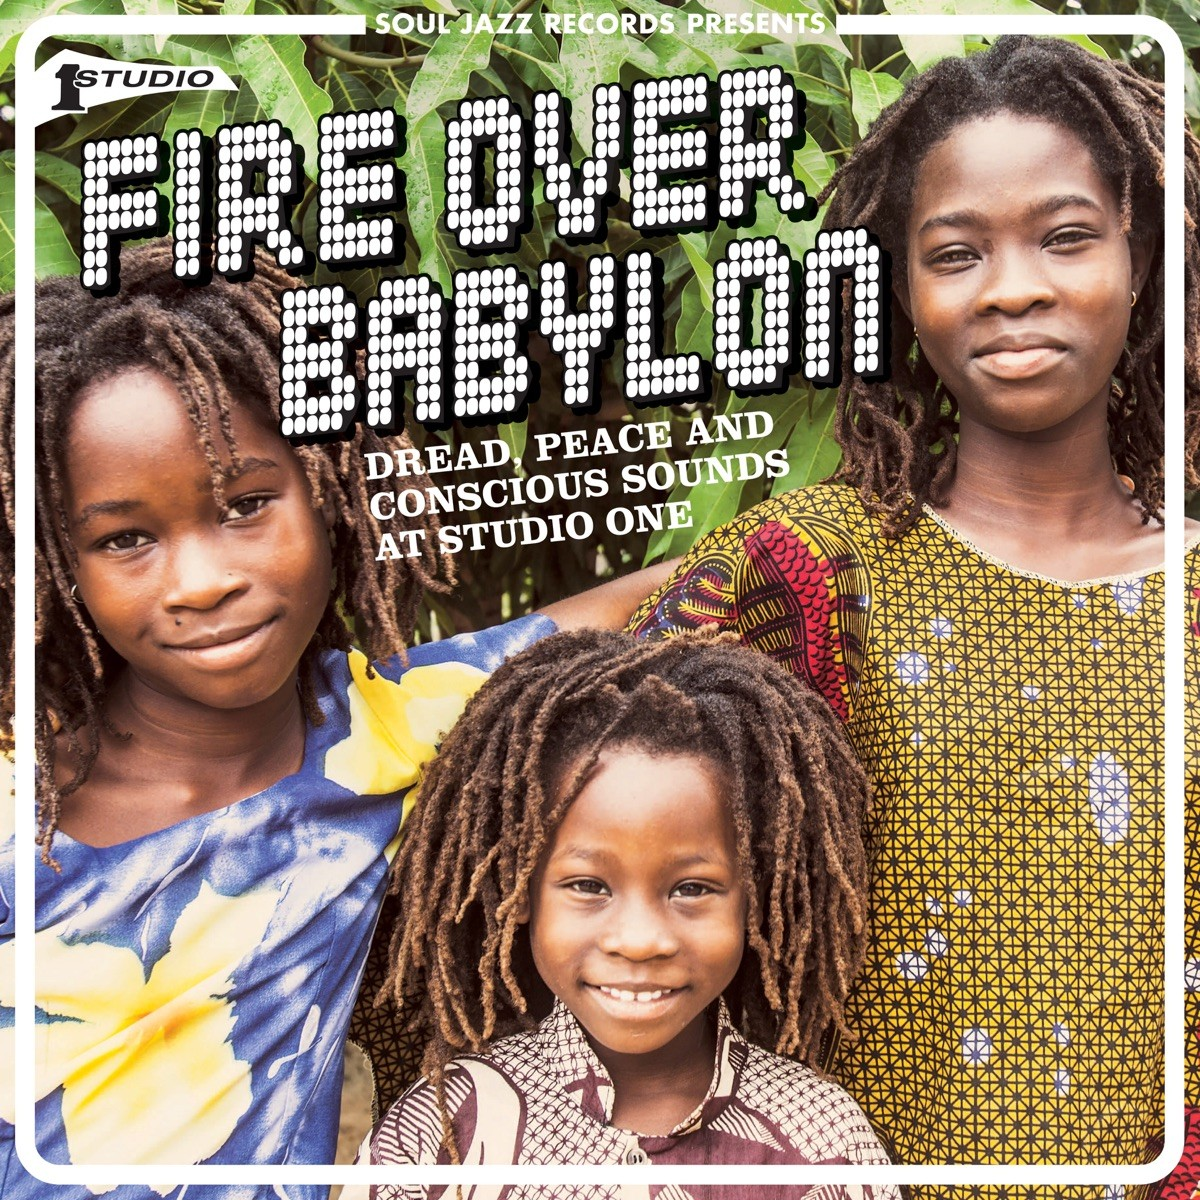 Soul Jazz Records presents Fire Over Babylon: Dread, Peace and Conscious Sounds at Studio One VINYL - SIRLP465